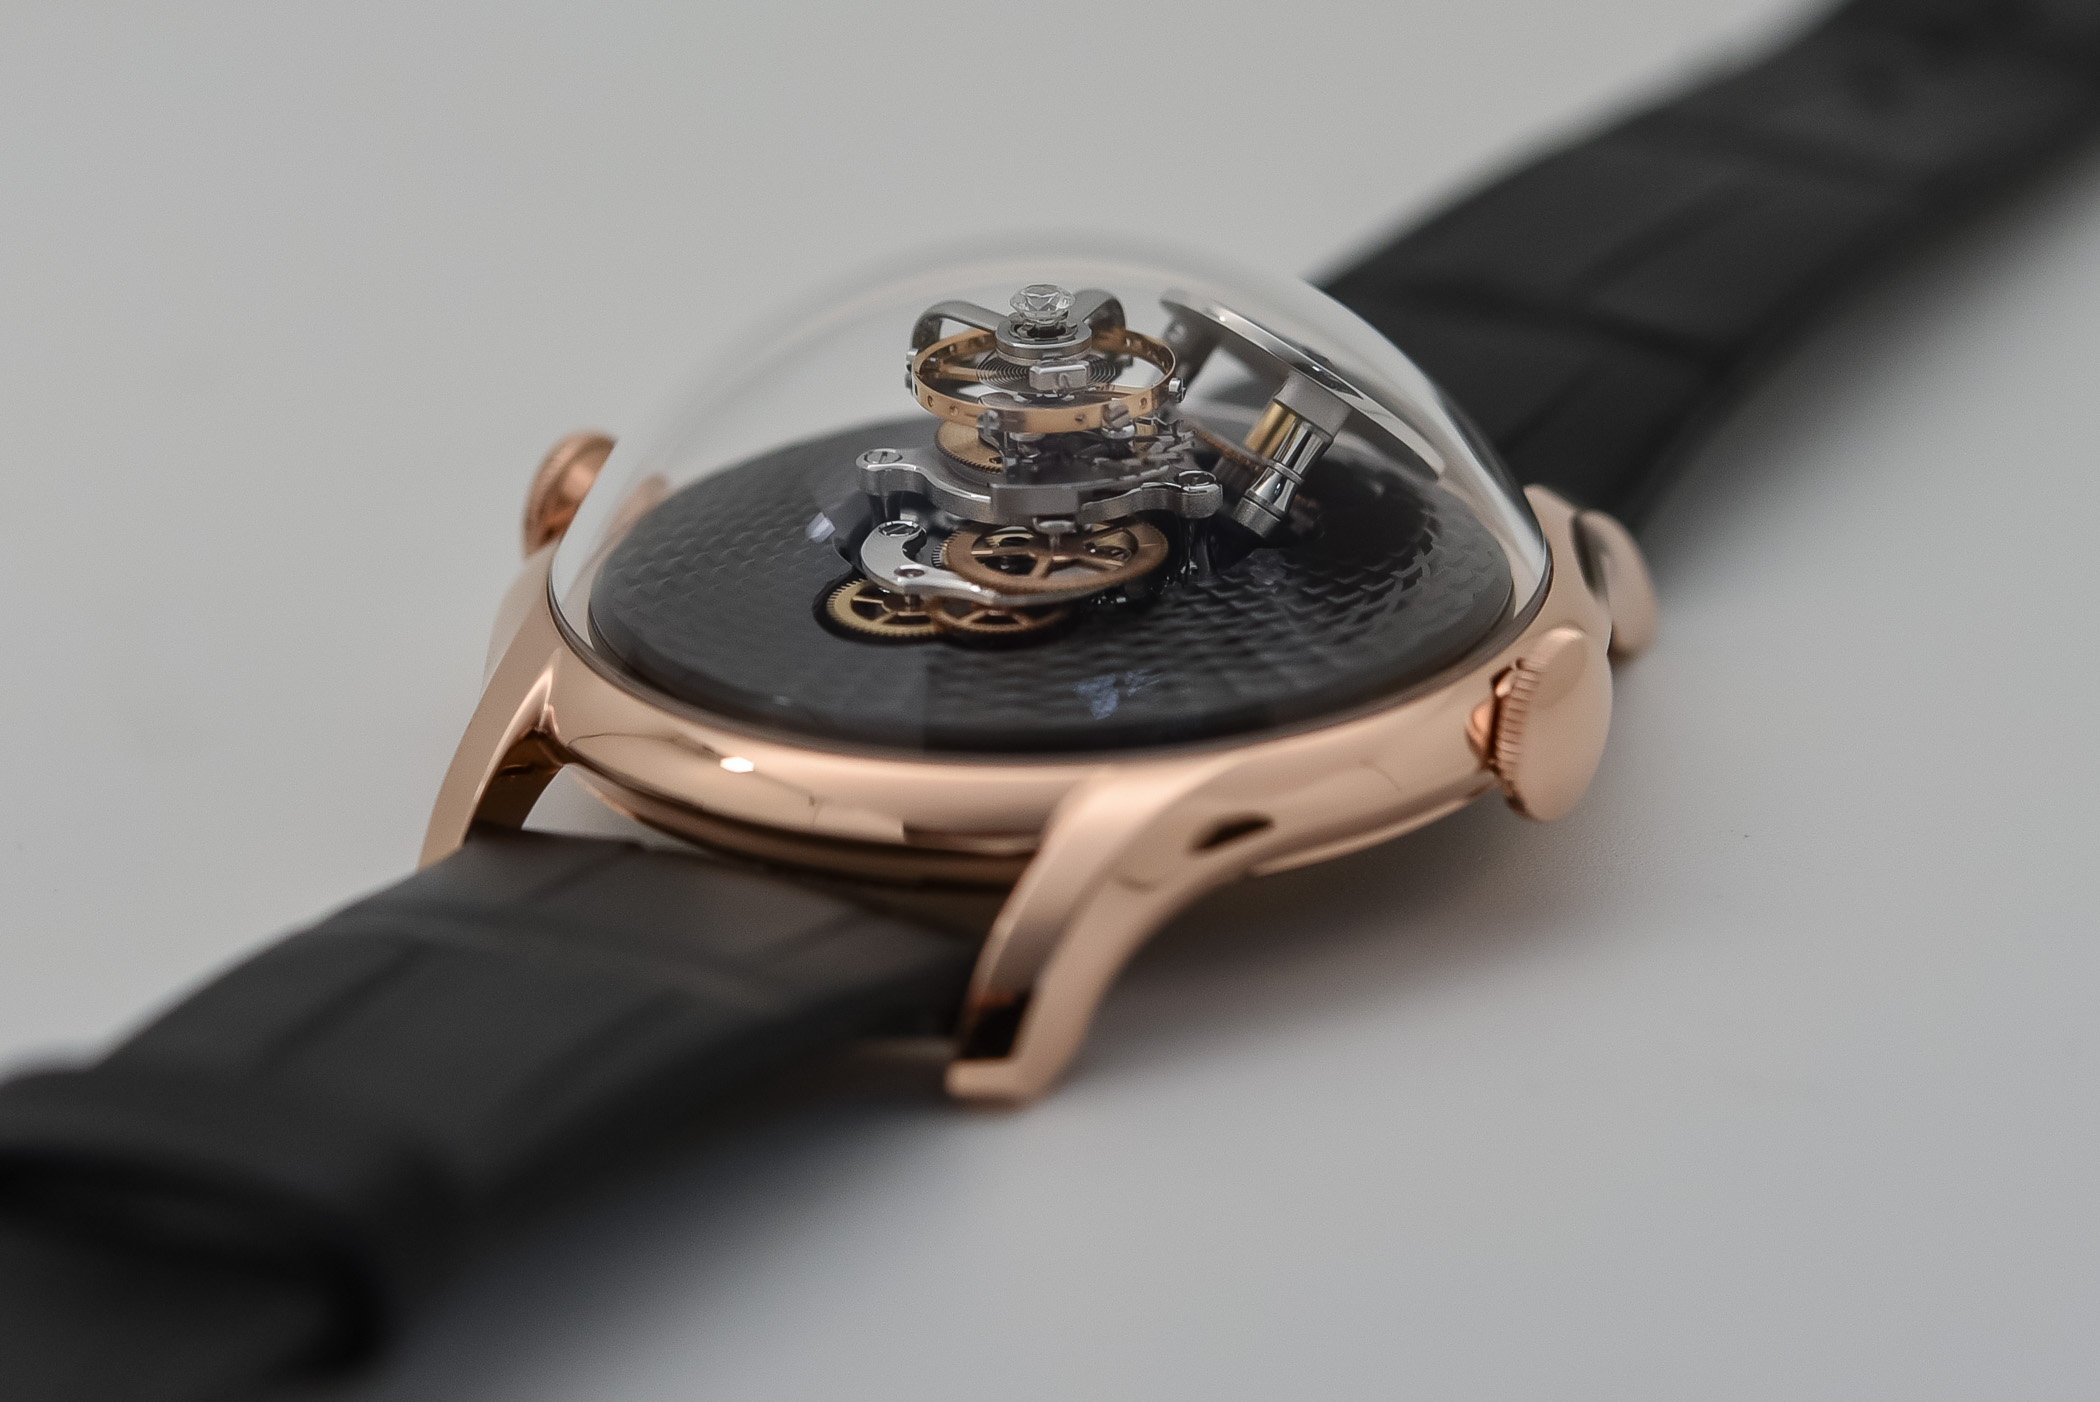 MBandF LM FlyingT Red Gold and Platinum - 5